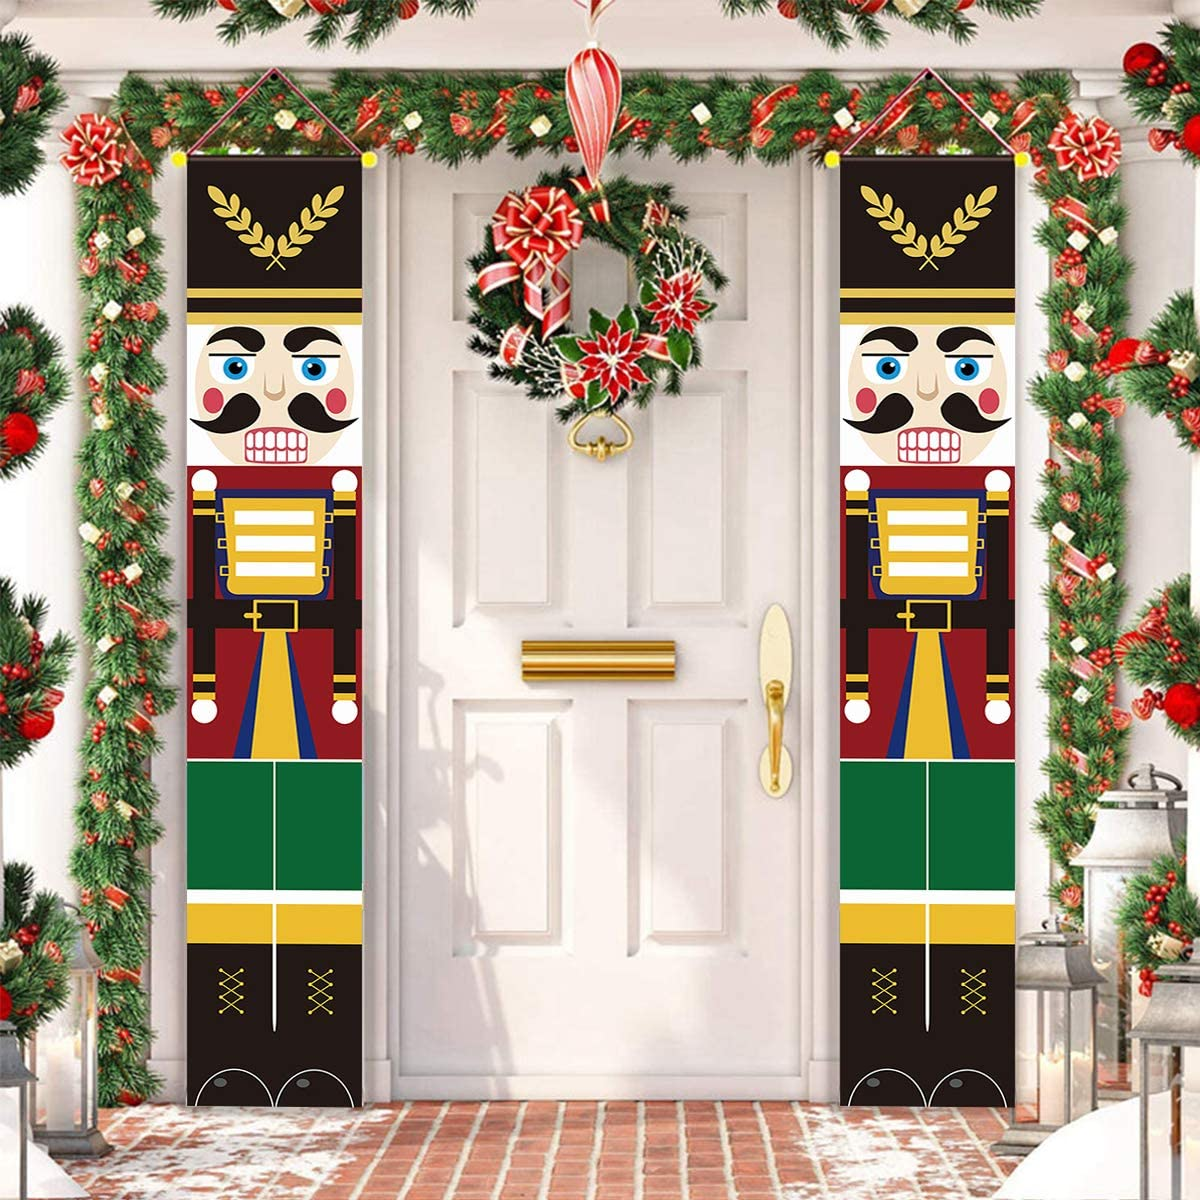 ALLODUCK Nutcracker Christmas Decorations - Life Size Nutcracker Soldier Porch Signs -Xmas Hanging Banners Sign for Outdoor Home Wall Door Office Garage Apartment Holiday Party Decoration